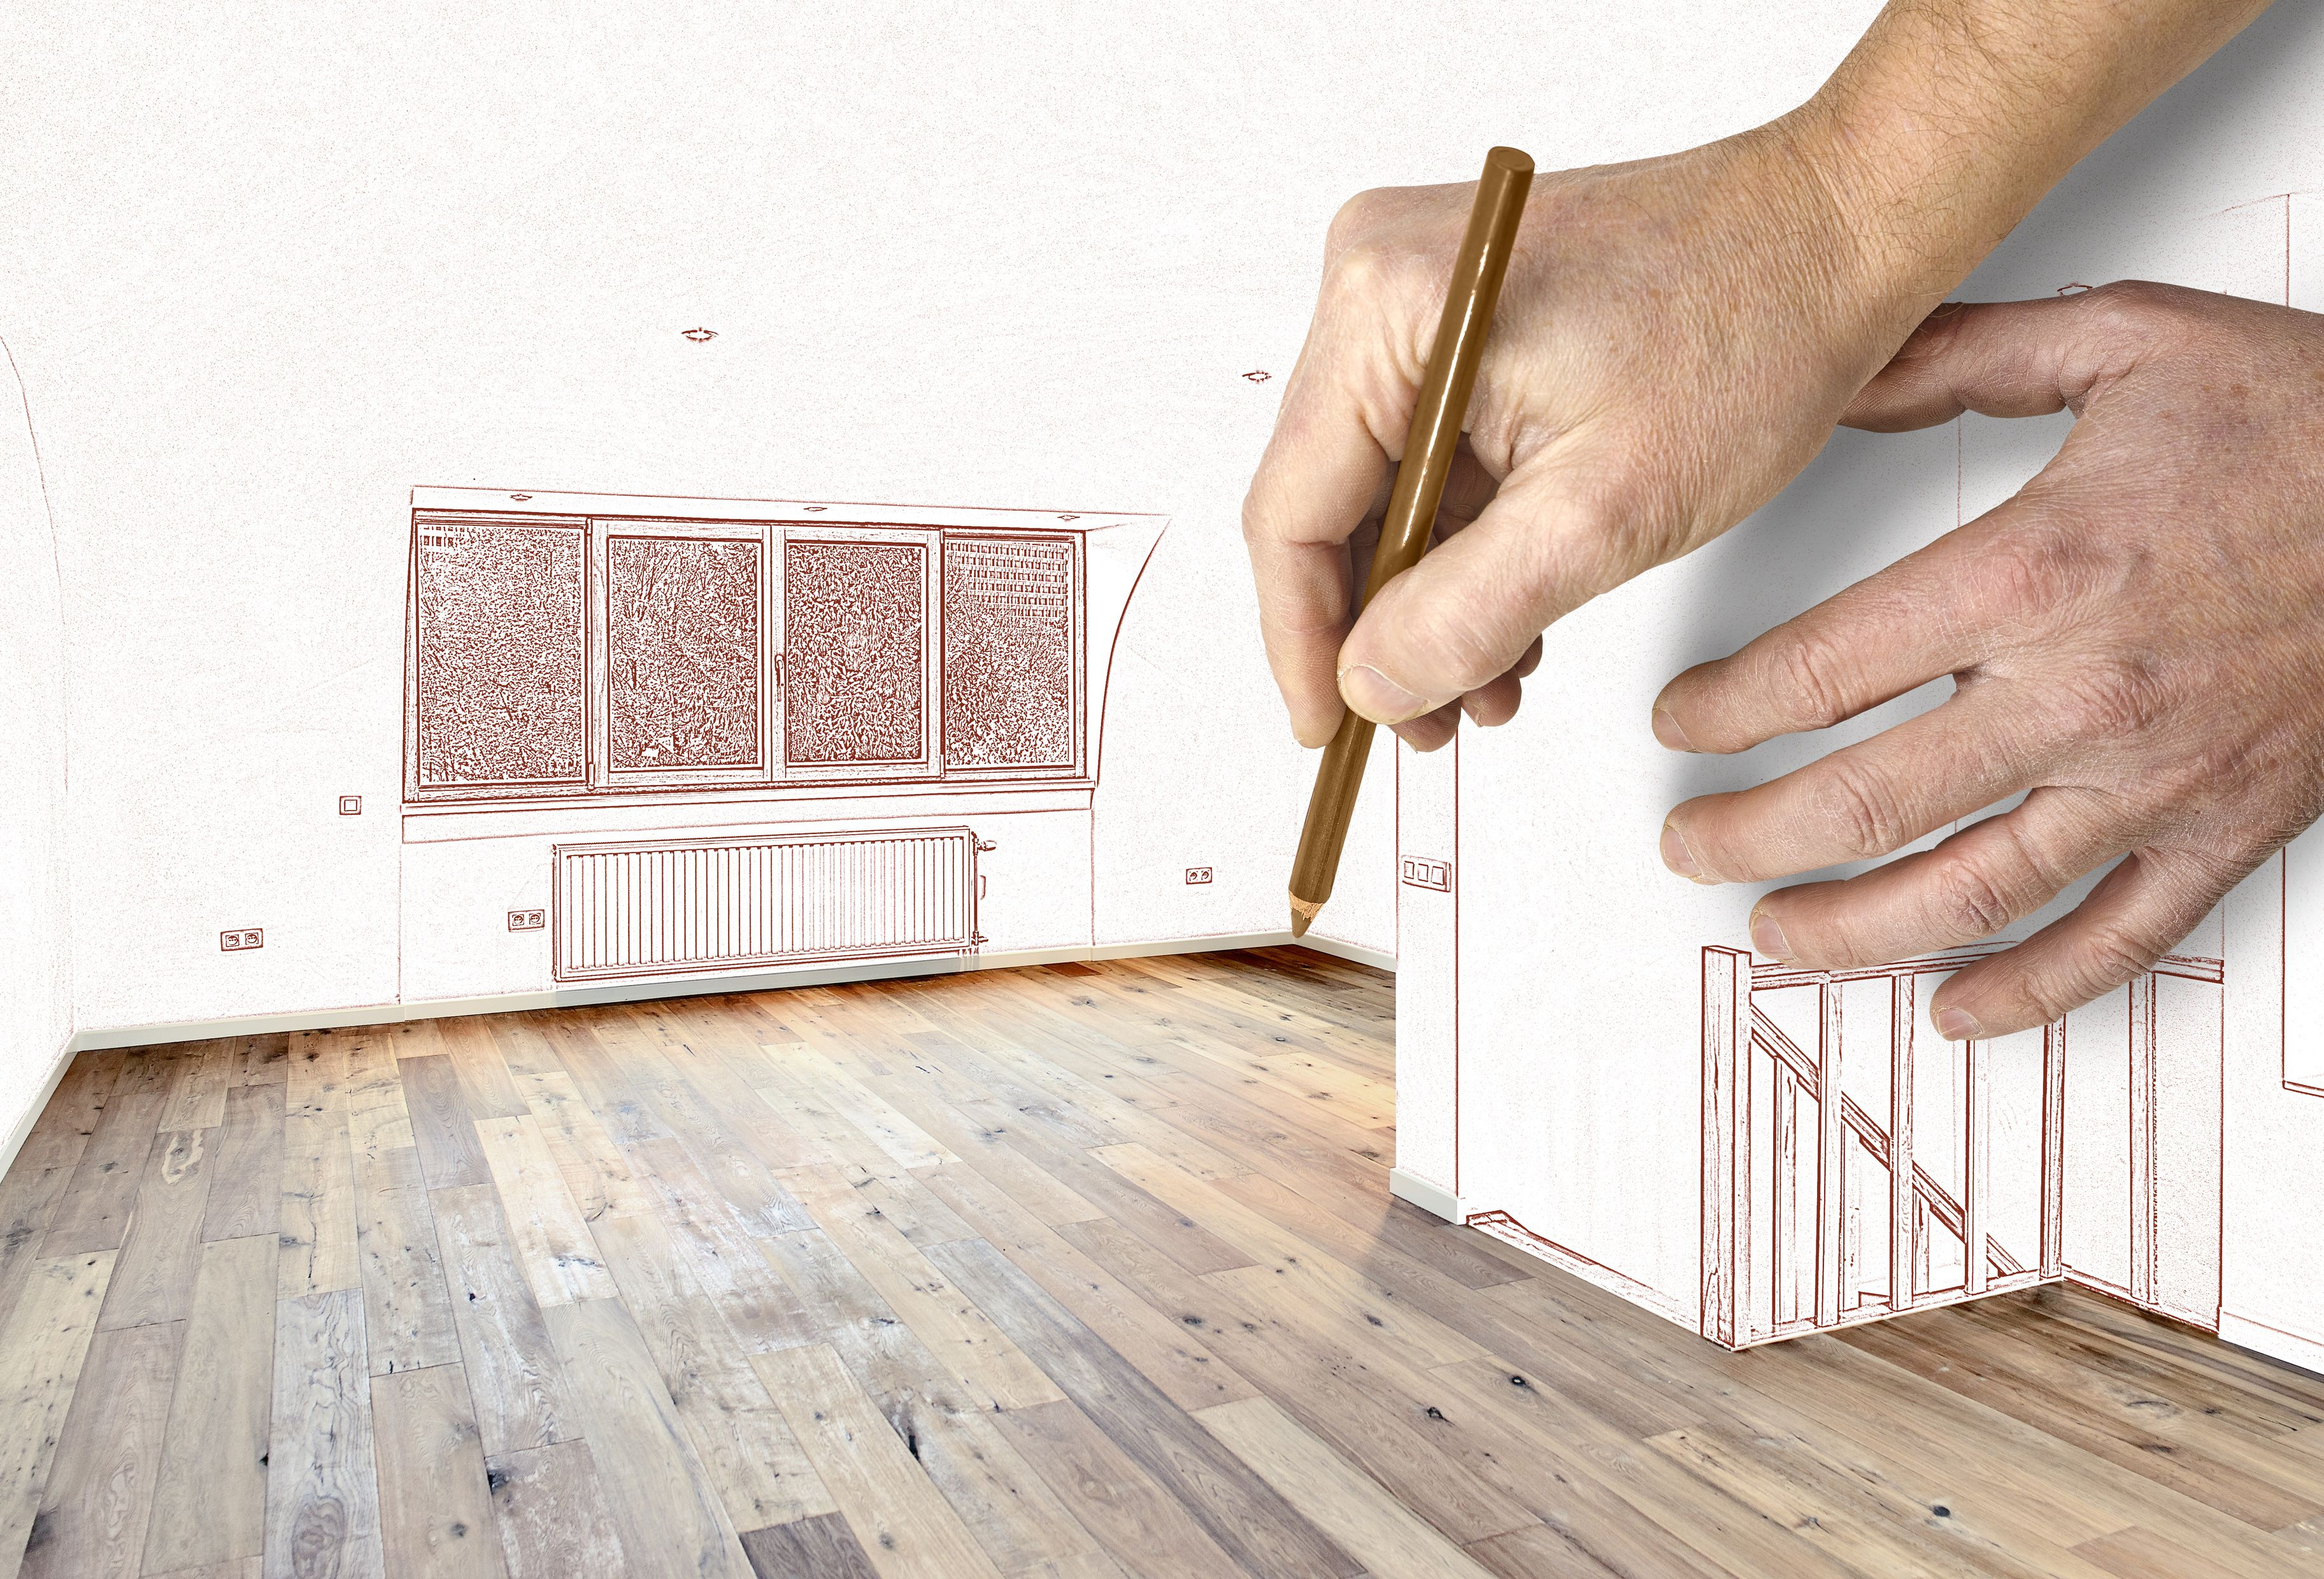 hardwood flooring cost calculator of the meaning of gross square feet inside gettyimages 828443712 5b875cbec9e77c0057c5055f